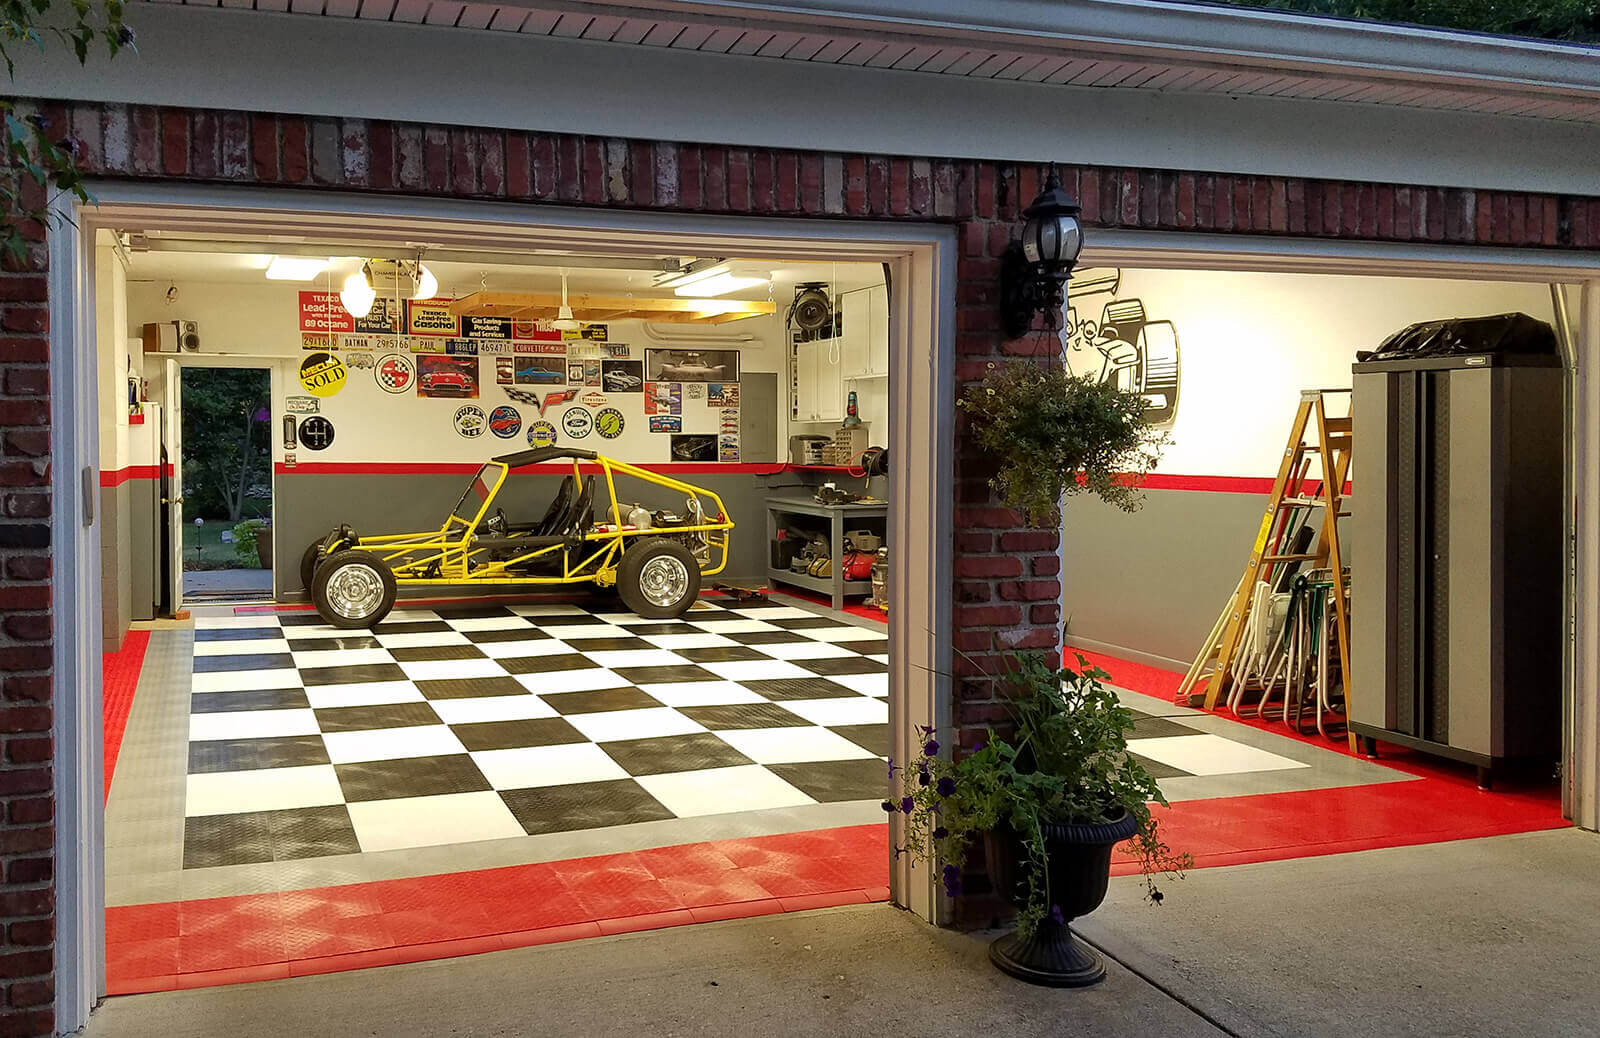 """Looking in at a garage with RaceDeck Diamond<sup>™</sup> flooring and red edging. <a href=""""http://racedeck.com/racedeck-products/racedeck-diamond/"""">Click here for more about RaceDeck Diamond. </a>"""